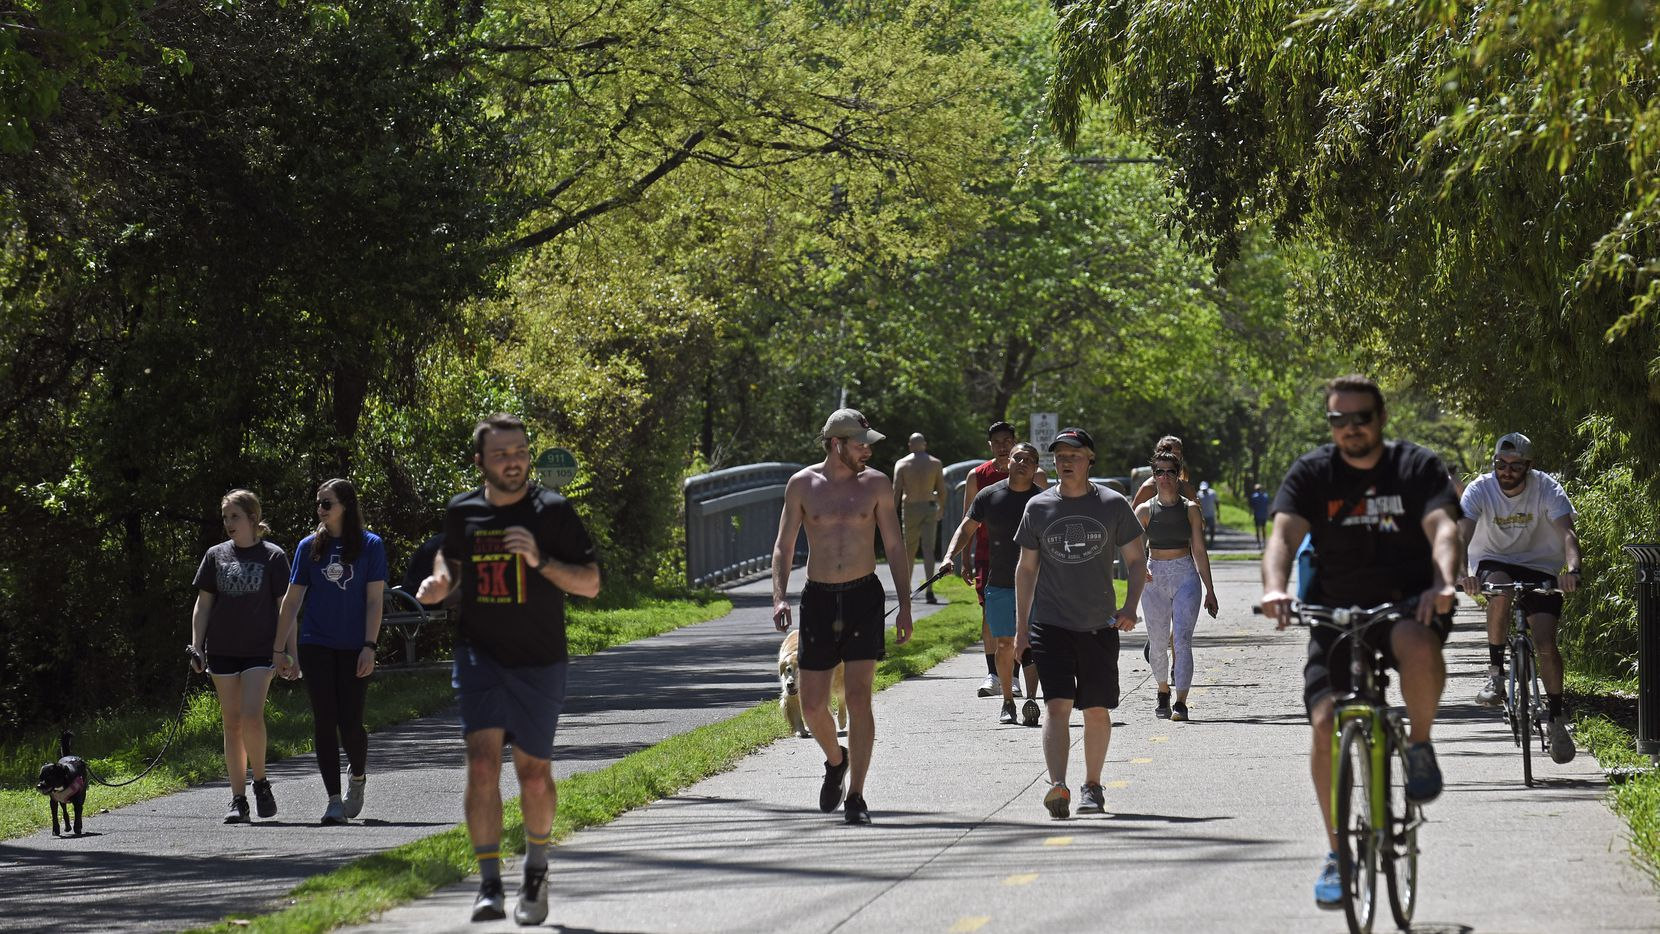 Groups of runners, cyclists and dog walkers use the Katy Trail near the Katy Trail Icehouse in Dallas, March 24, 2020. Dallas County Judge Clay Jenkins ordered residents of Dallas County to practice shelter in place. People can be out for essentials such as groceries, work and exercise, but must practice social distancing.